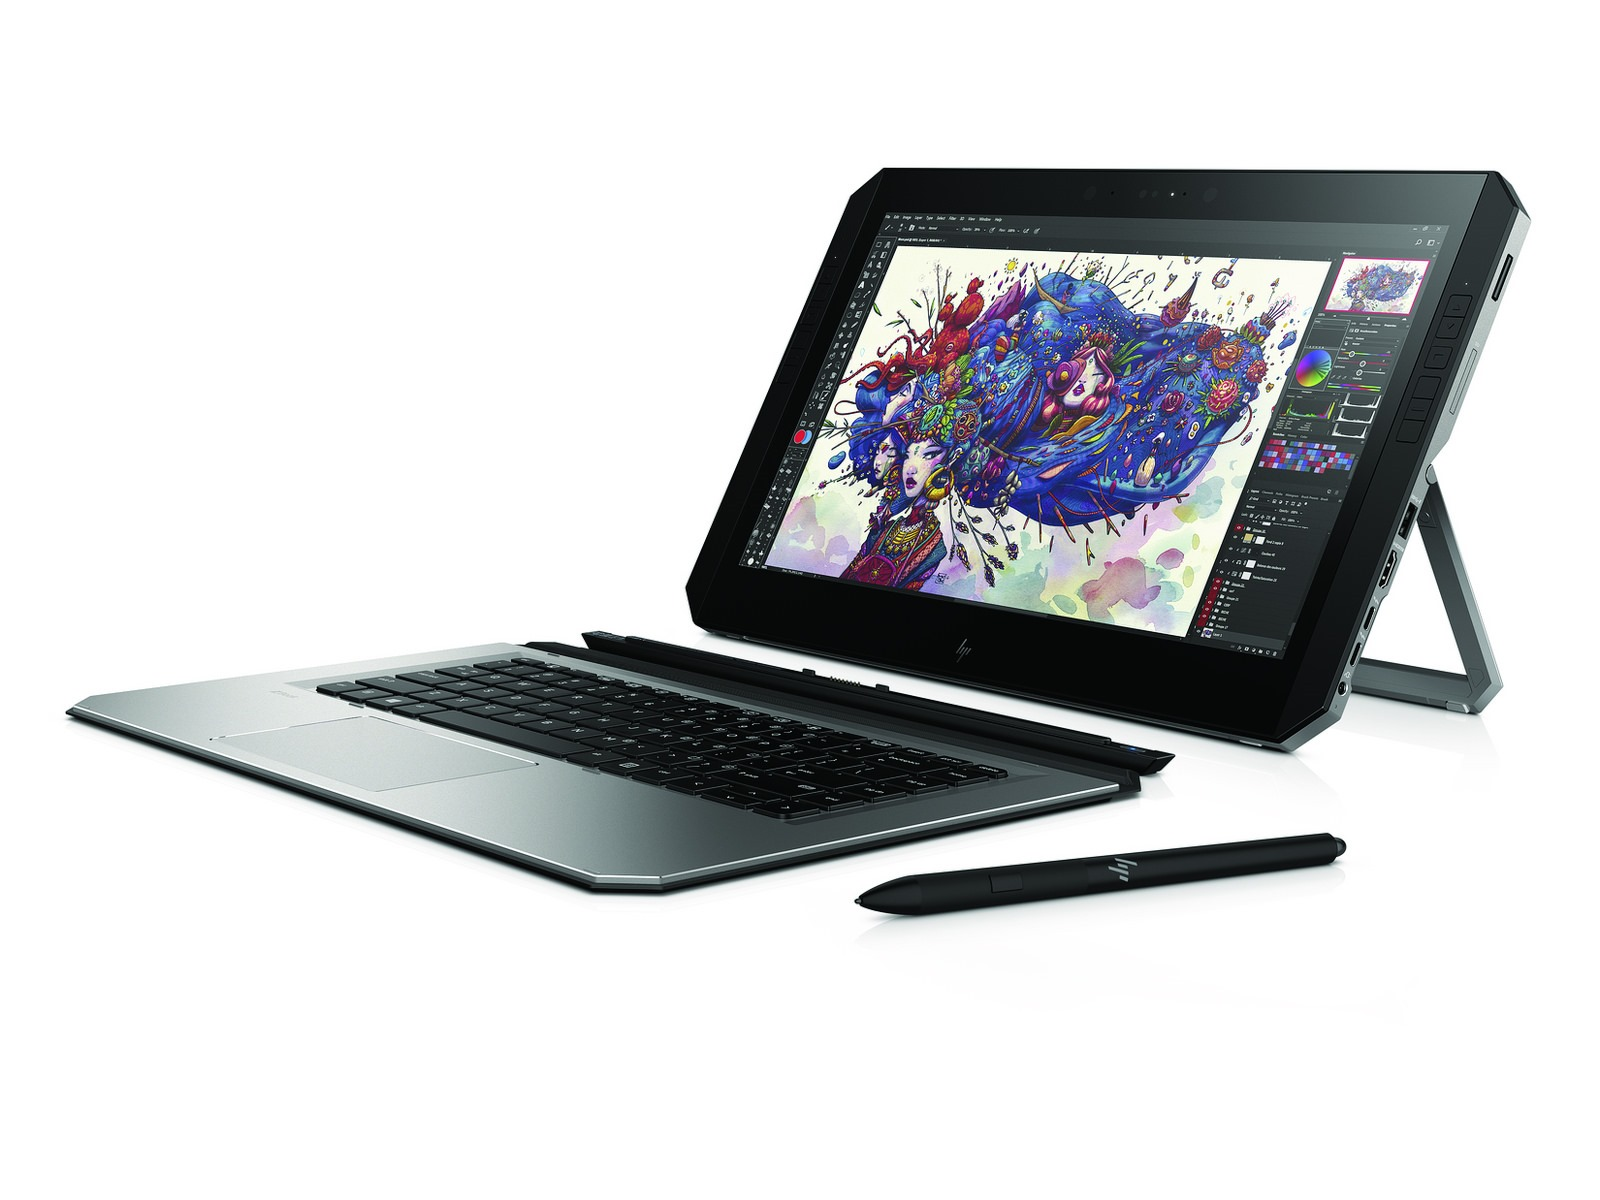 HP stellt mobile Workstation ZBook X2 vor